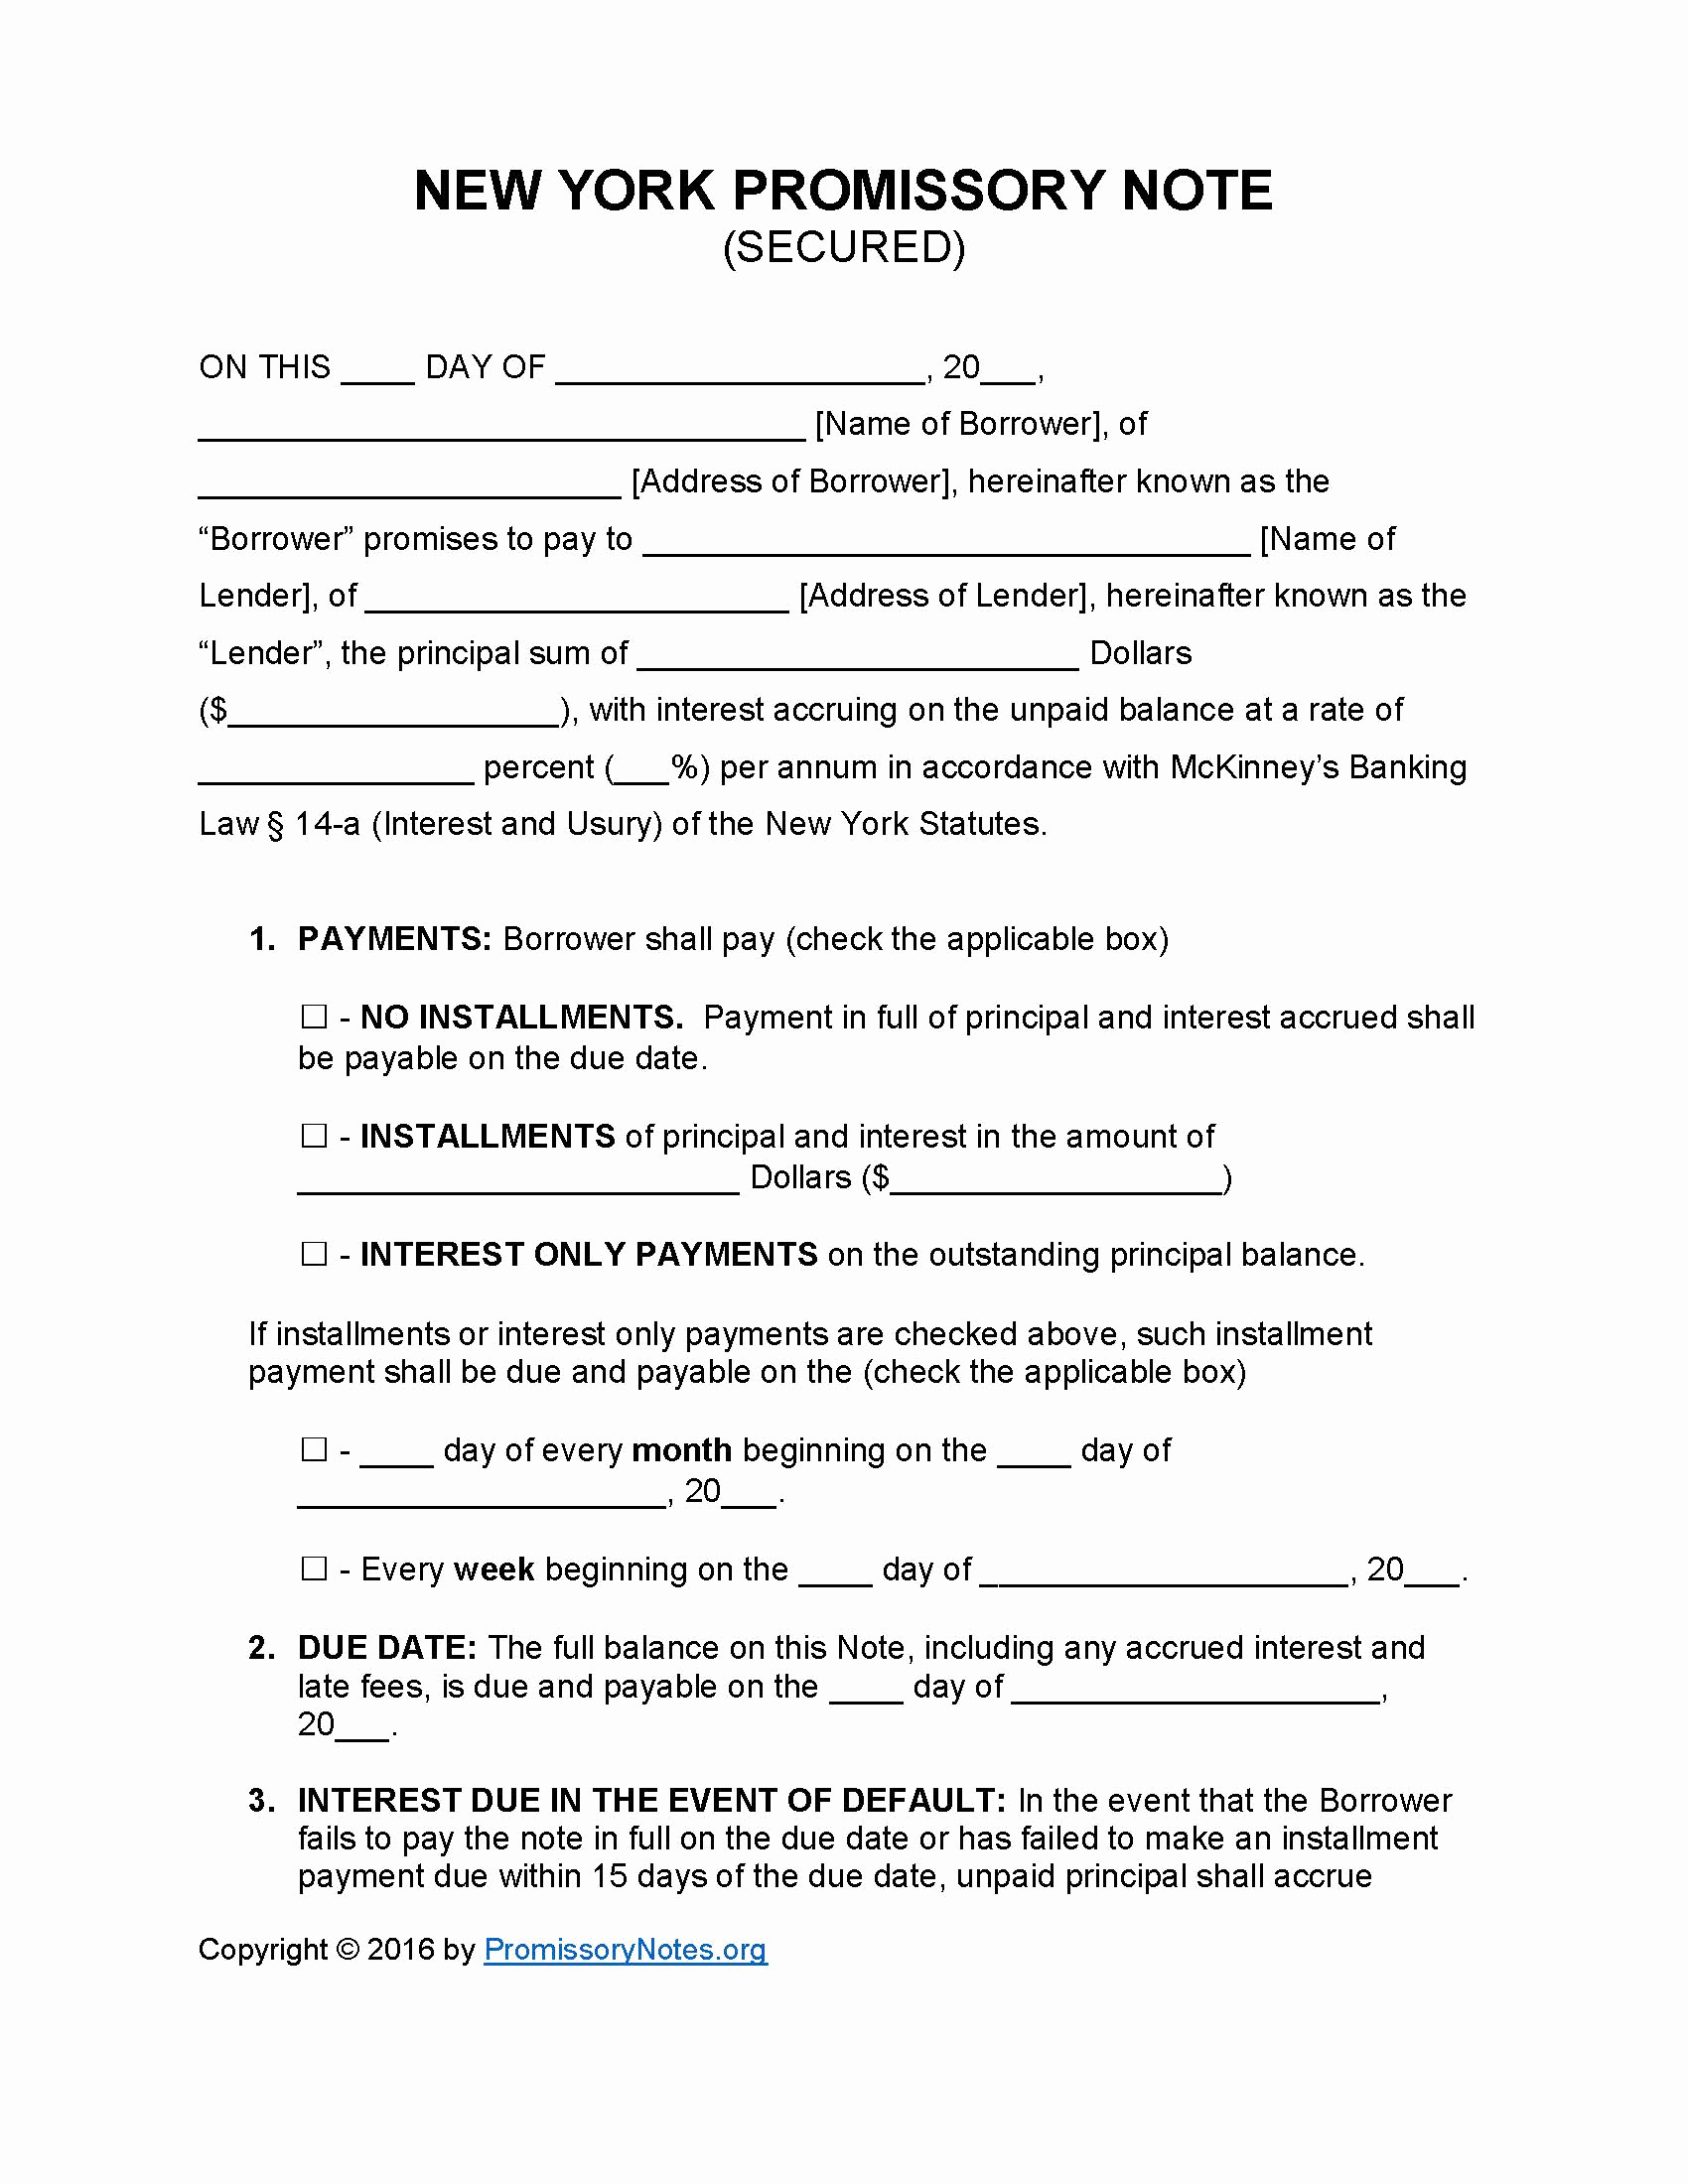 Secured Promissory Note Template Pdf Elegant New York Secured Promissory Note Template Promissory